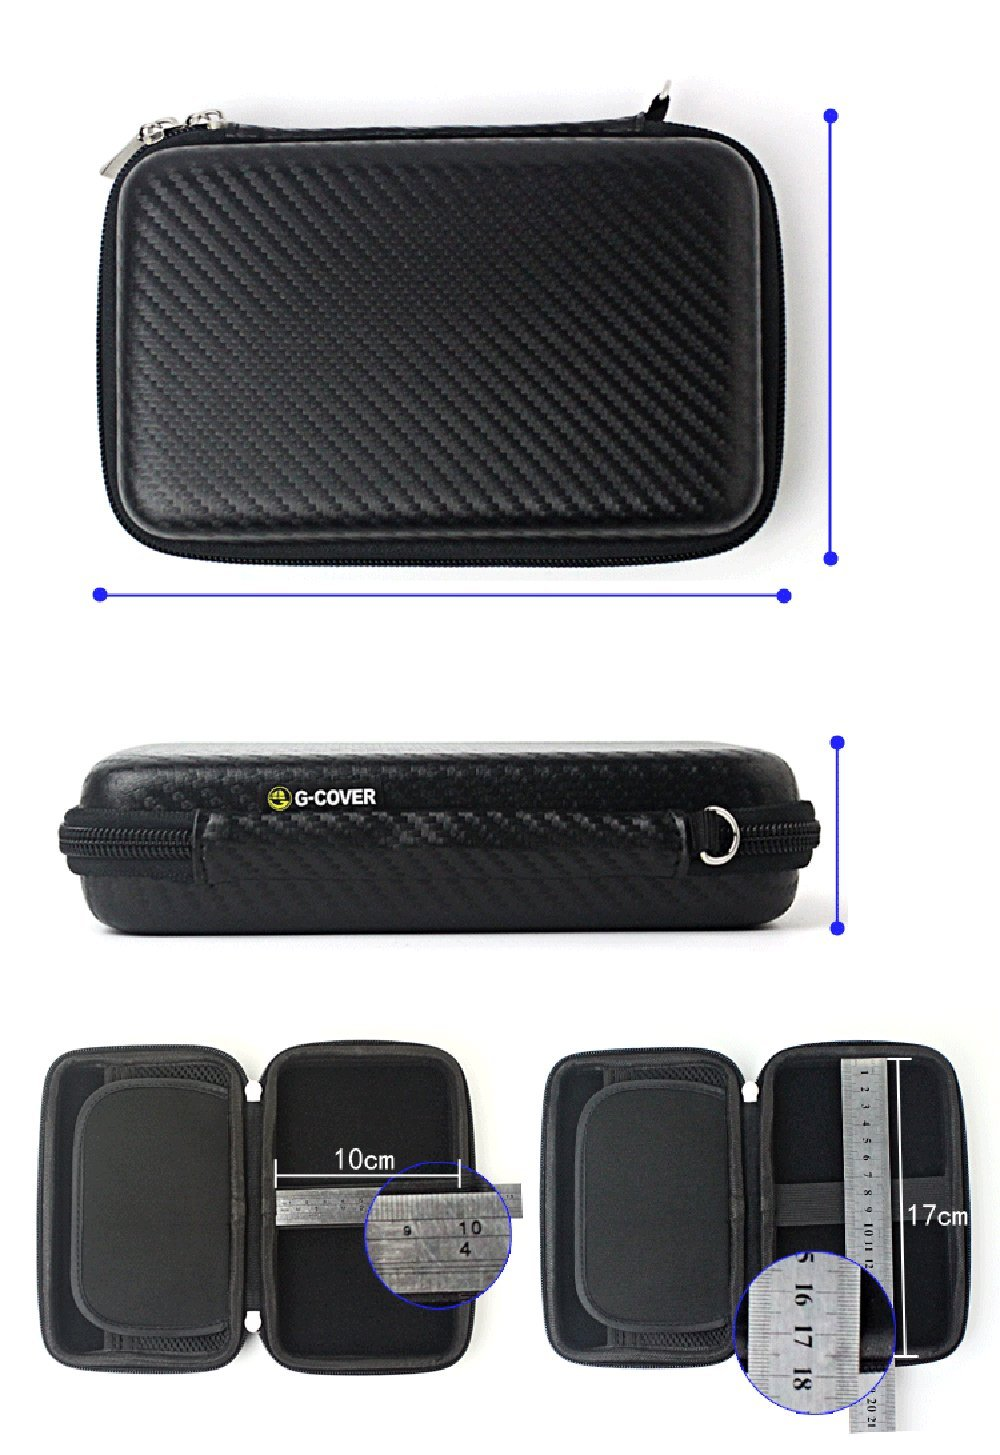 Chihom Travel Wallet Electronics Organizer, Portable Waterproof Hard Carrying Case Universal Electric Accessories Hand Bag for Various USB, Phone, Charger and Cable, Black by Chihom (Image #4)